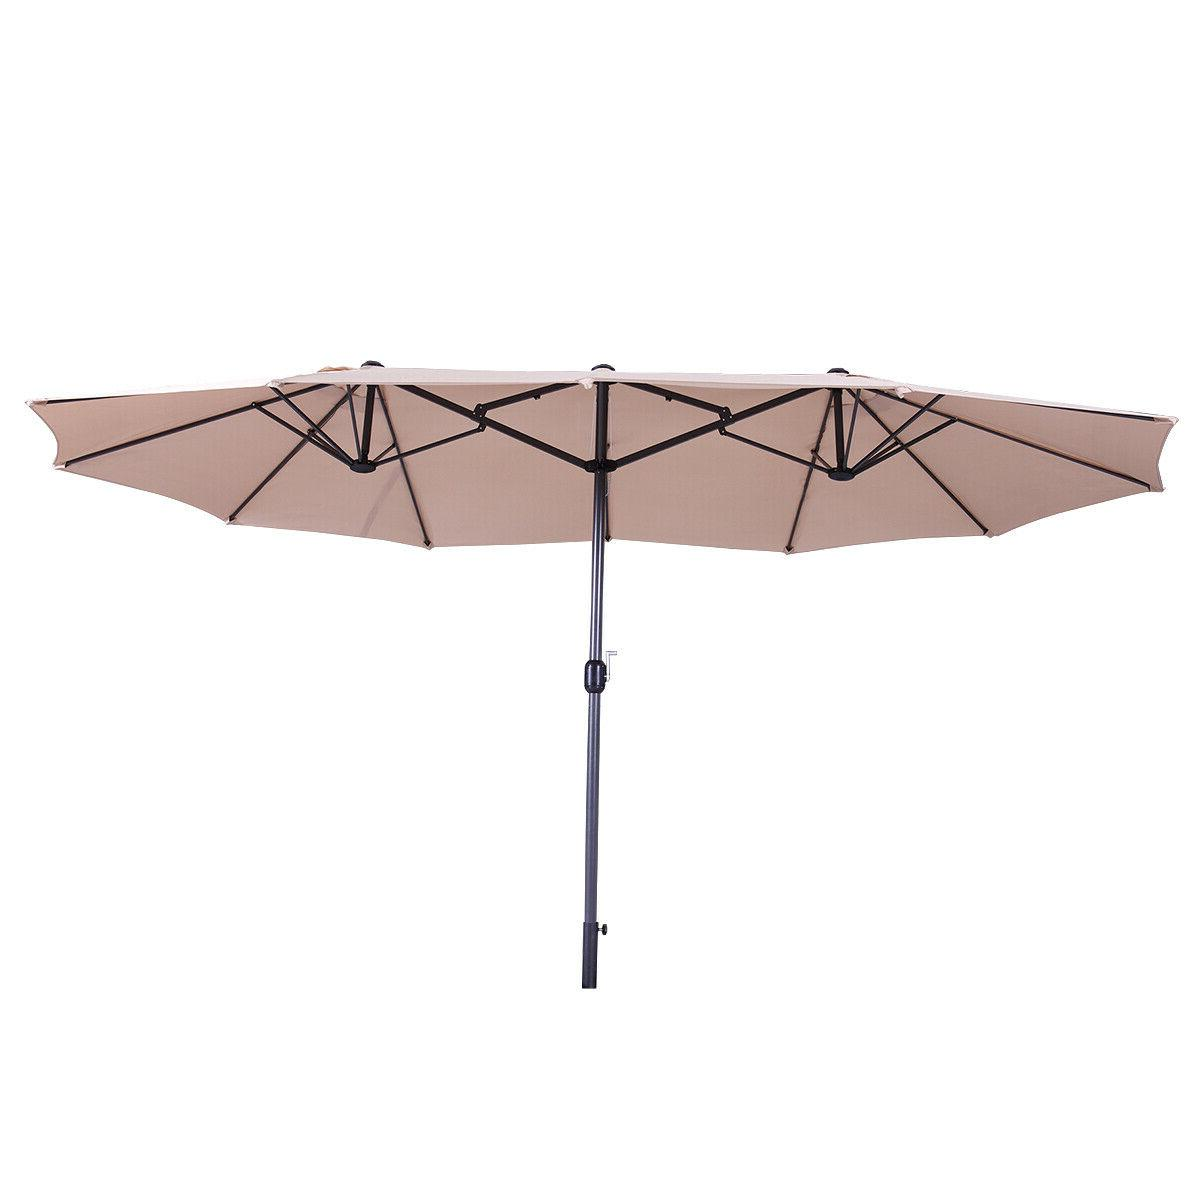 15Ft Large Umbrella Sunshade With Crank